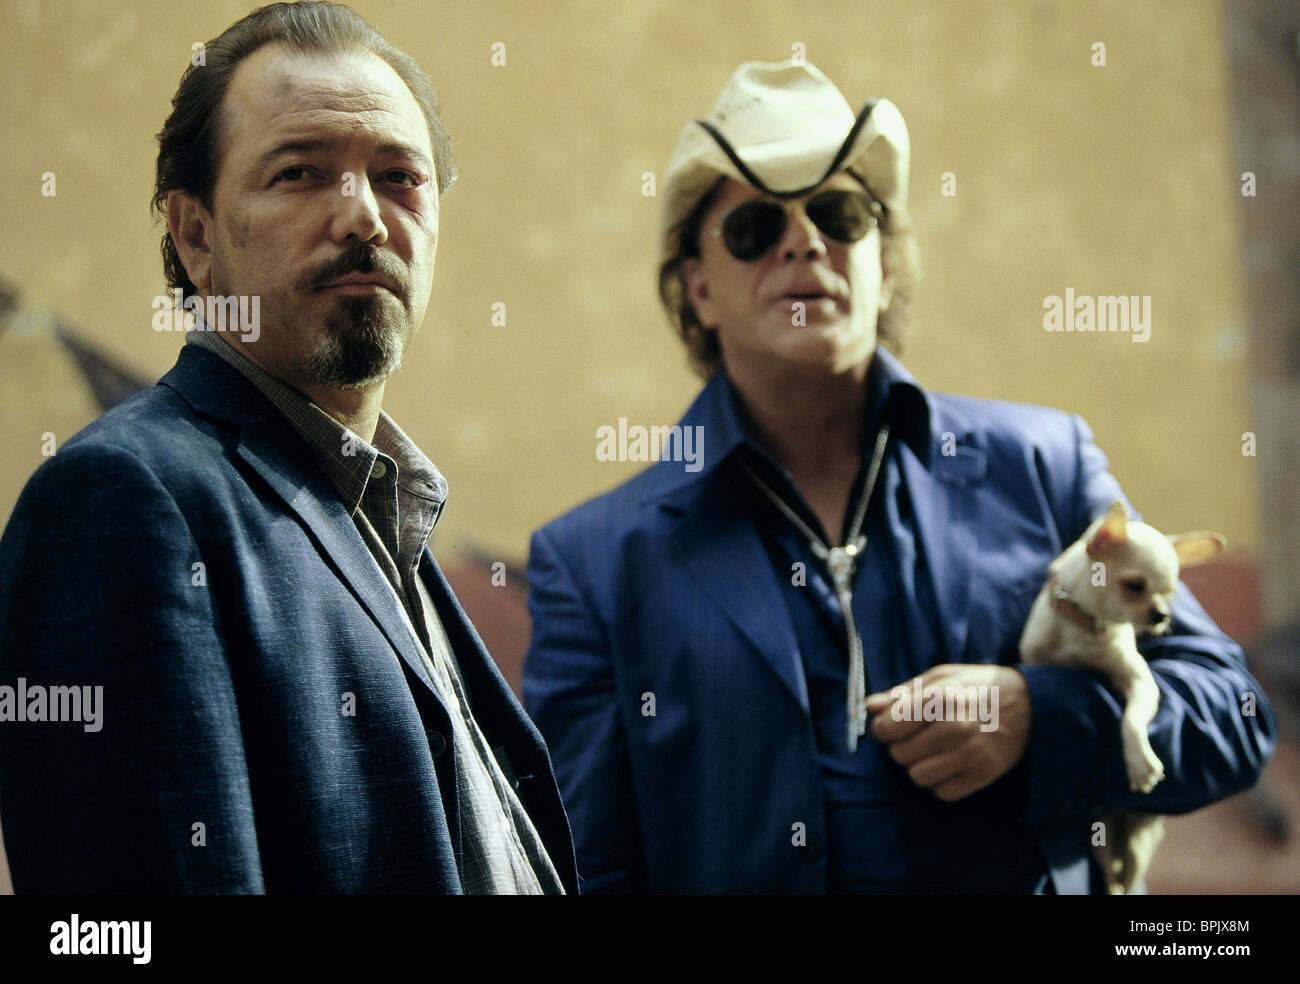 RUBEN BLADES & MICKEY ROURKE ONCE UPON A TIME IN MEXICO (2003) - Stock Image